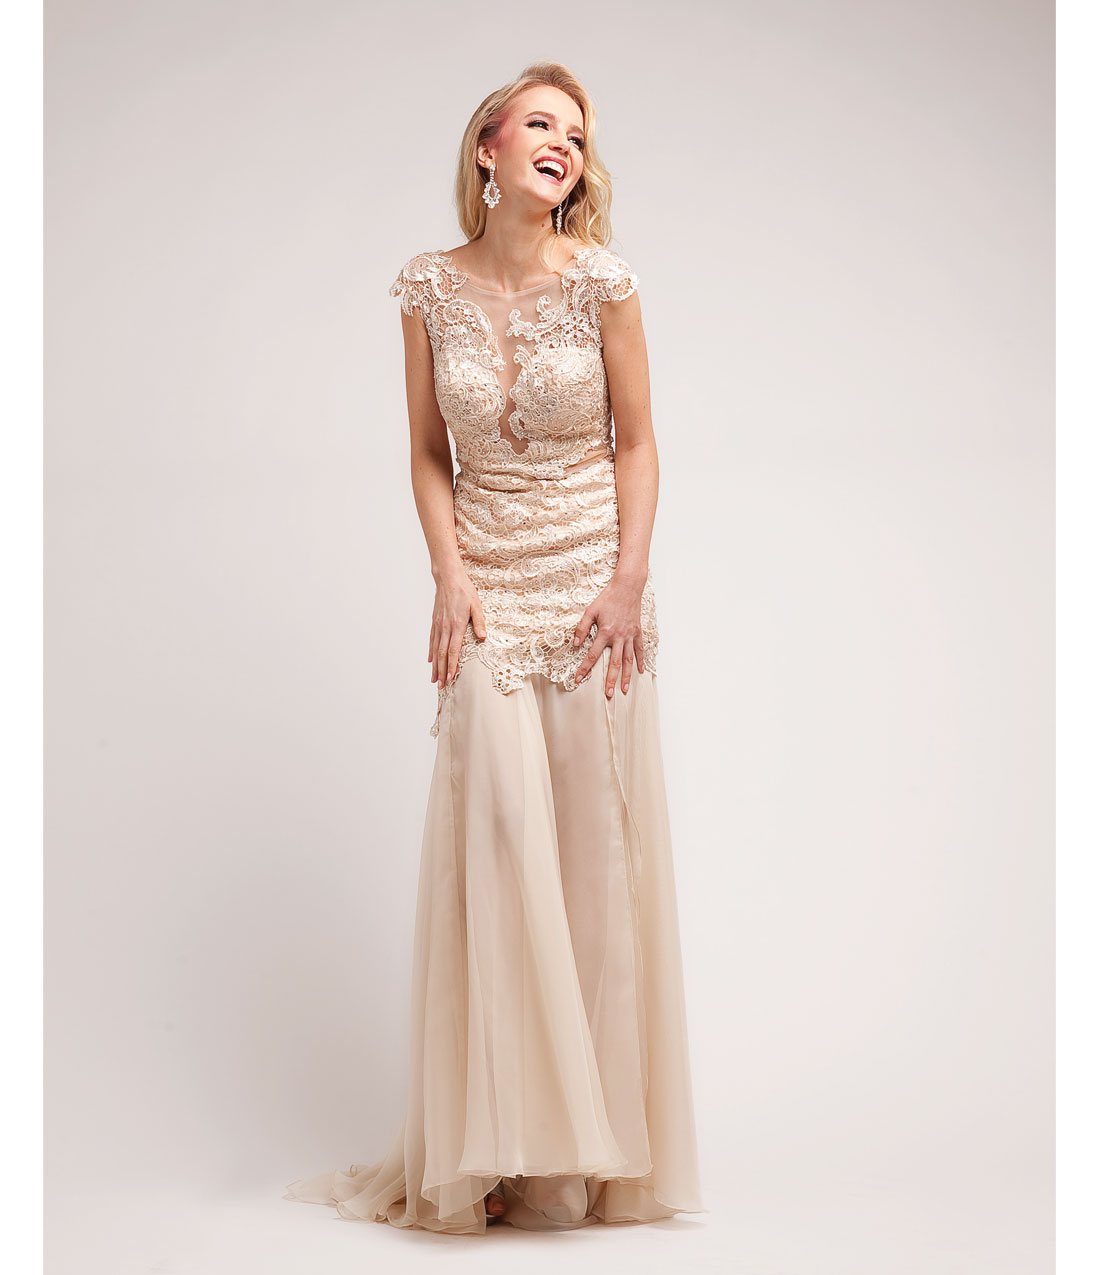 20 Elegant Evening Gowns For Graceful Look